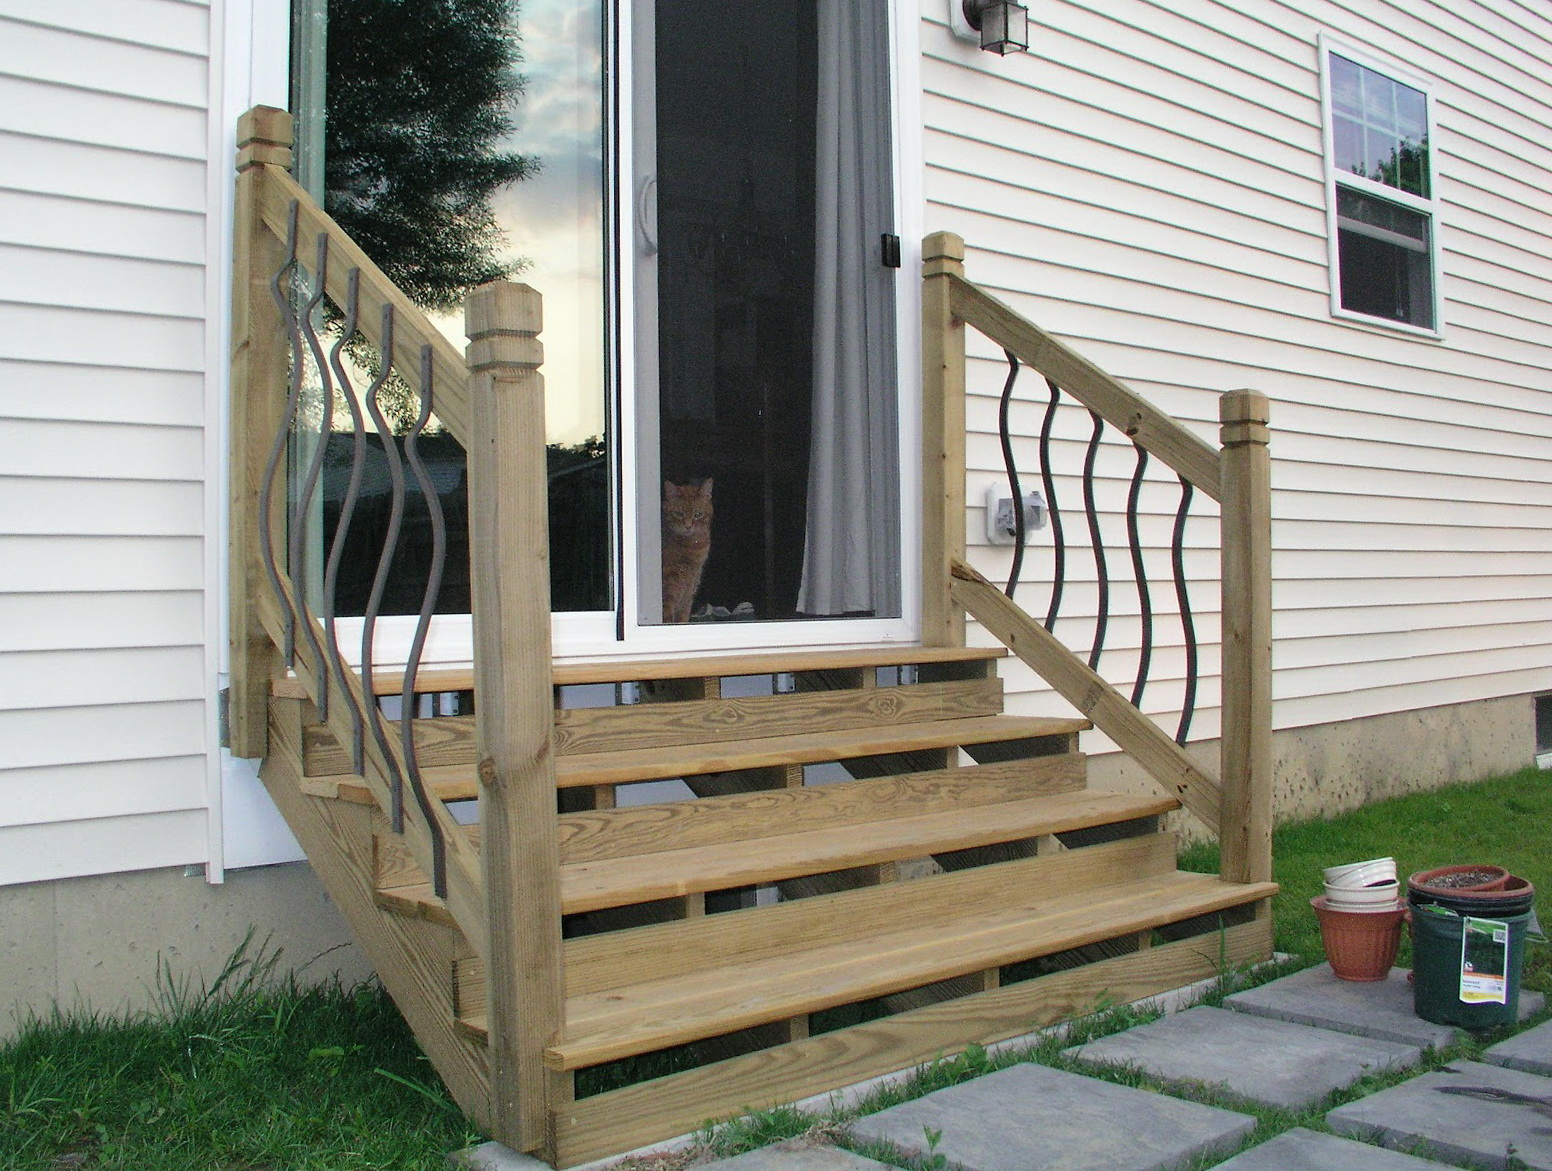 Build Wood Deck Stairs And Landing: Build Stairs Off Deck